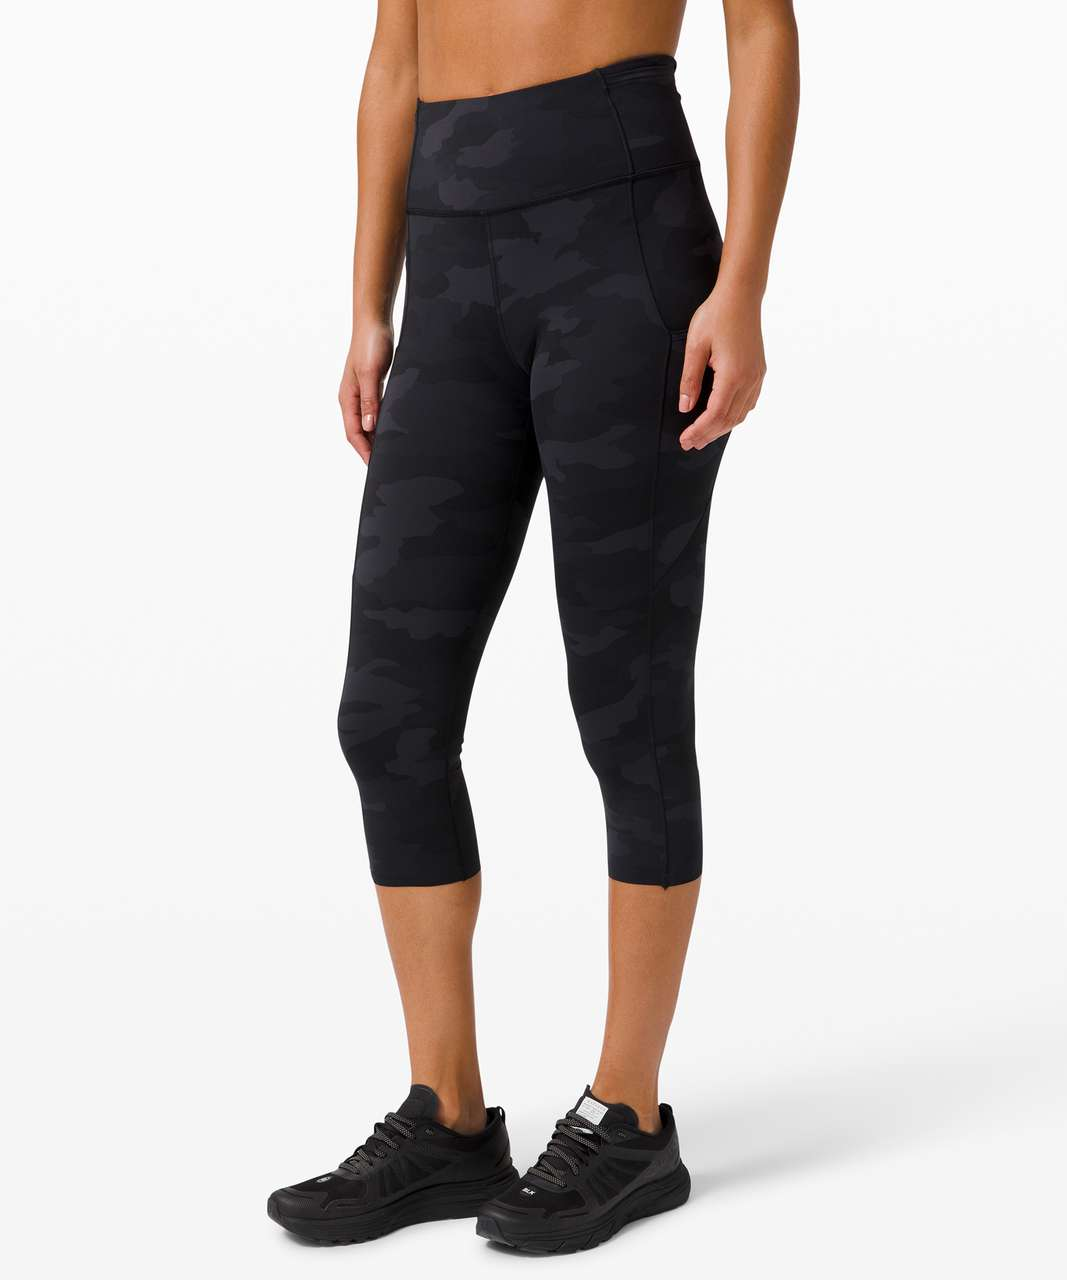 "Lululemon Fast and Free Crop II 19"" *Non-Reflective - Heritage 365 Camo Deep Coal Multi"